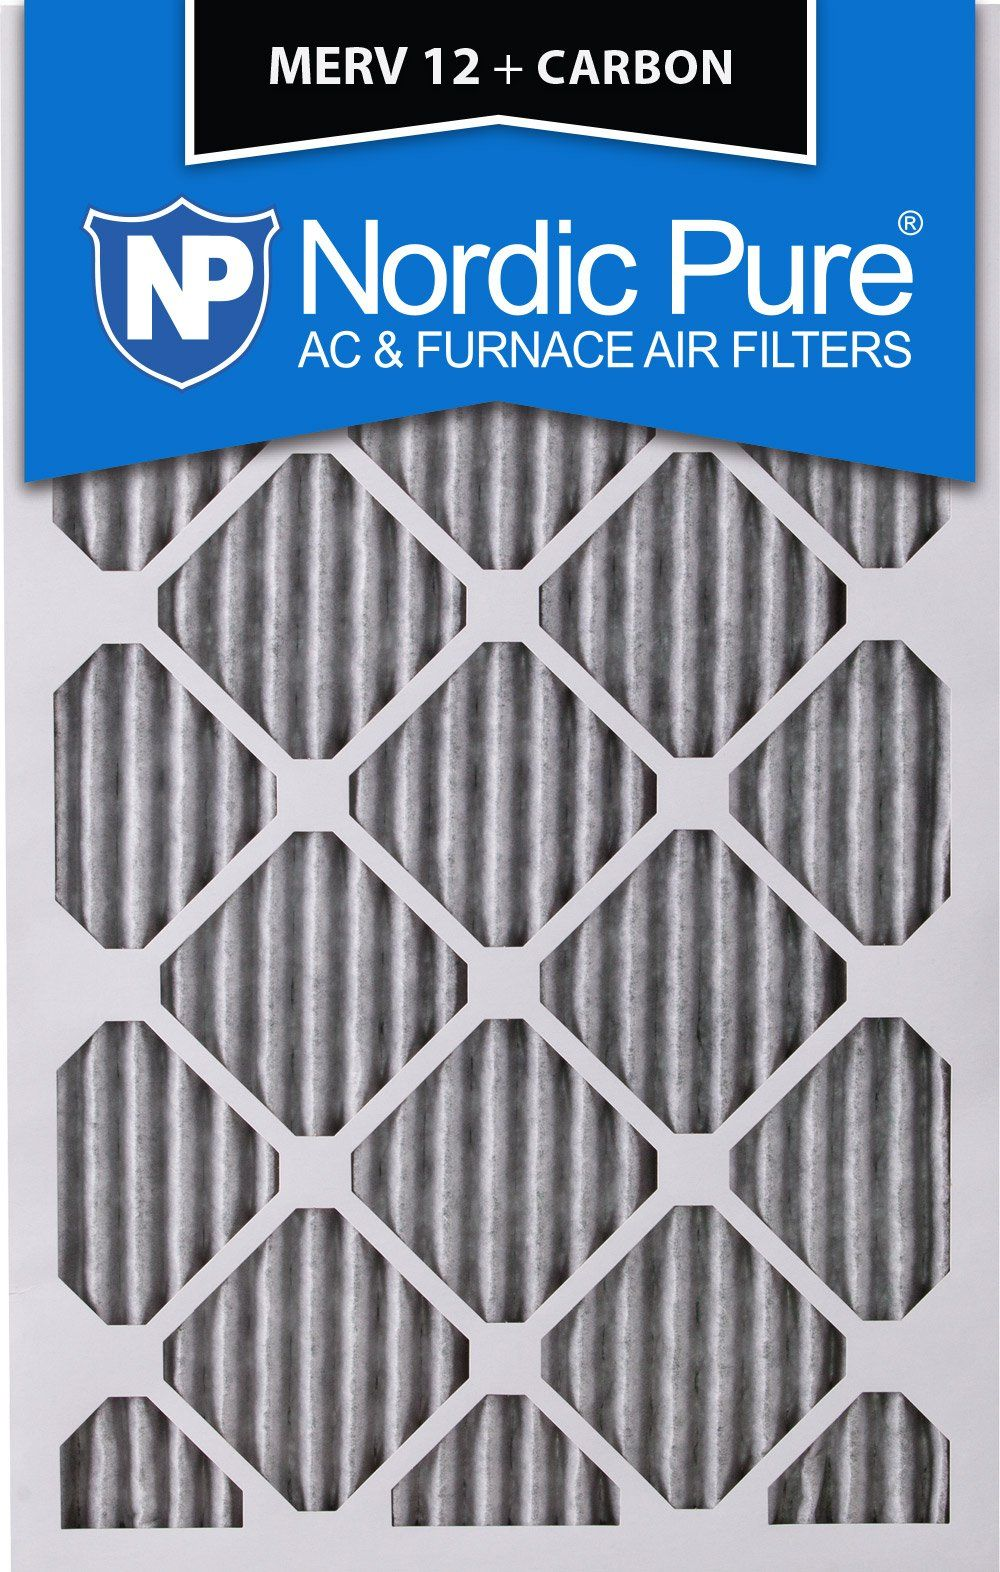 Nordic Pure 14x25x1 MERV 12 Pleated Plus Carbon AC Furnace